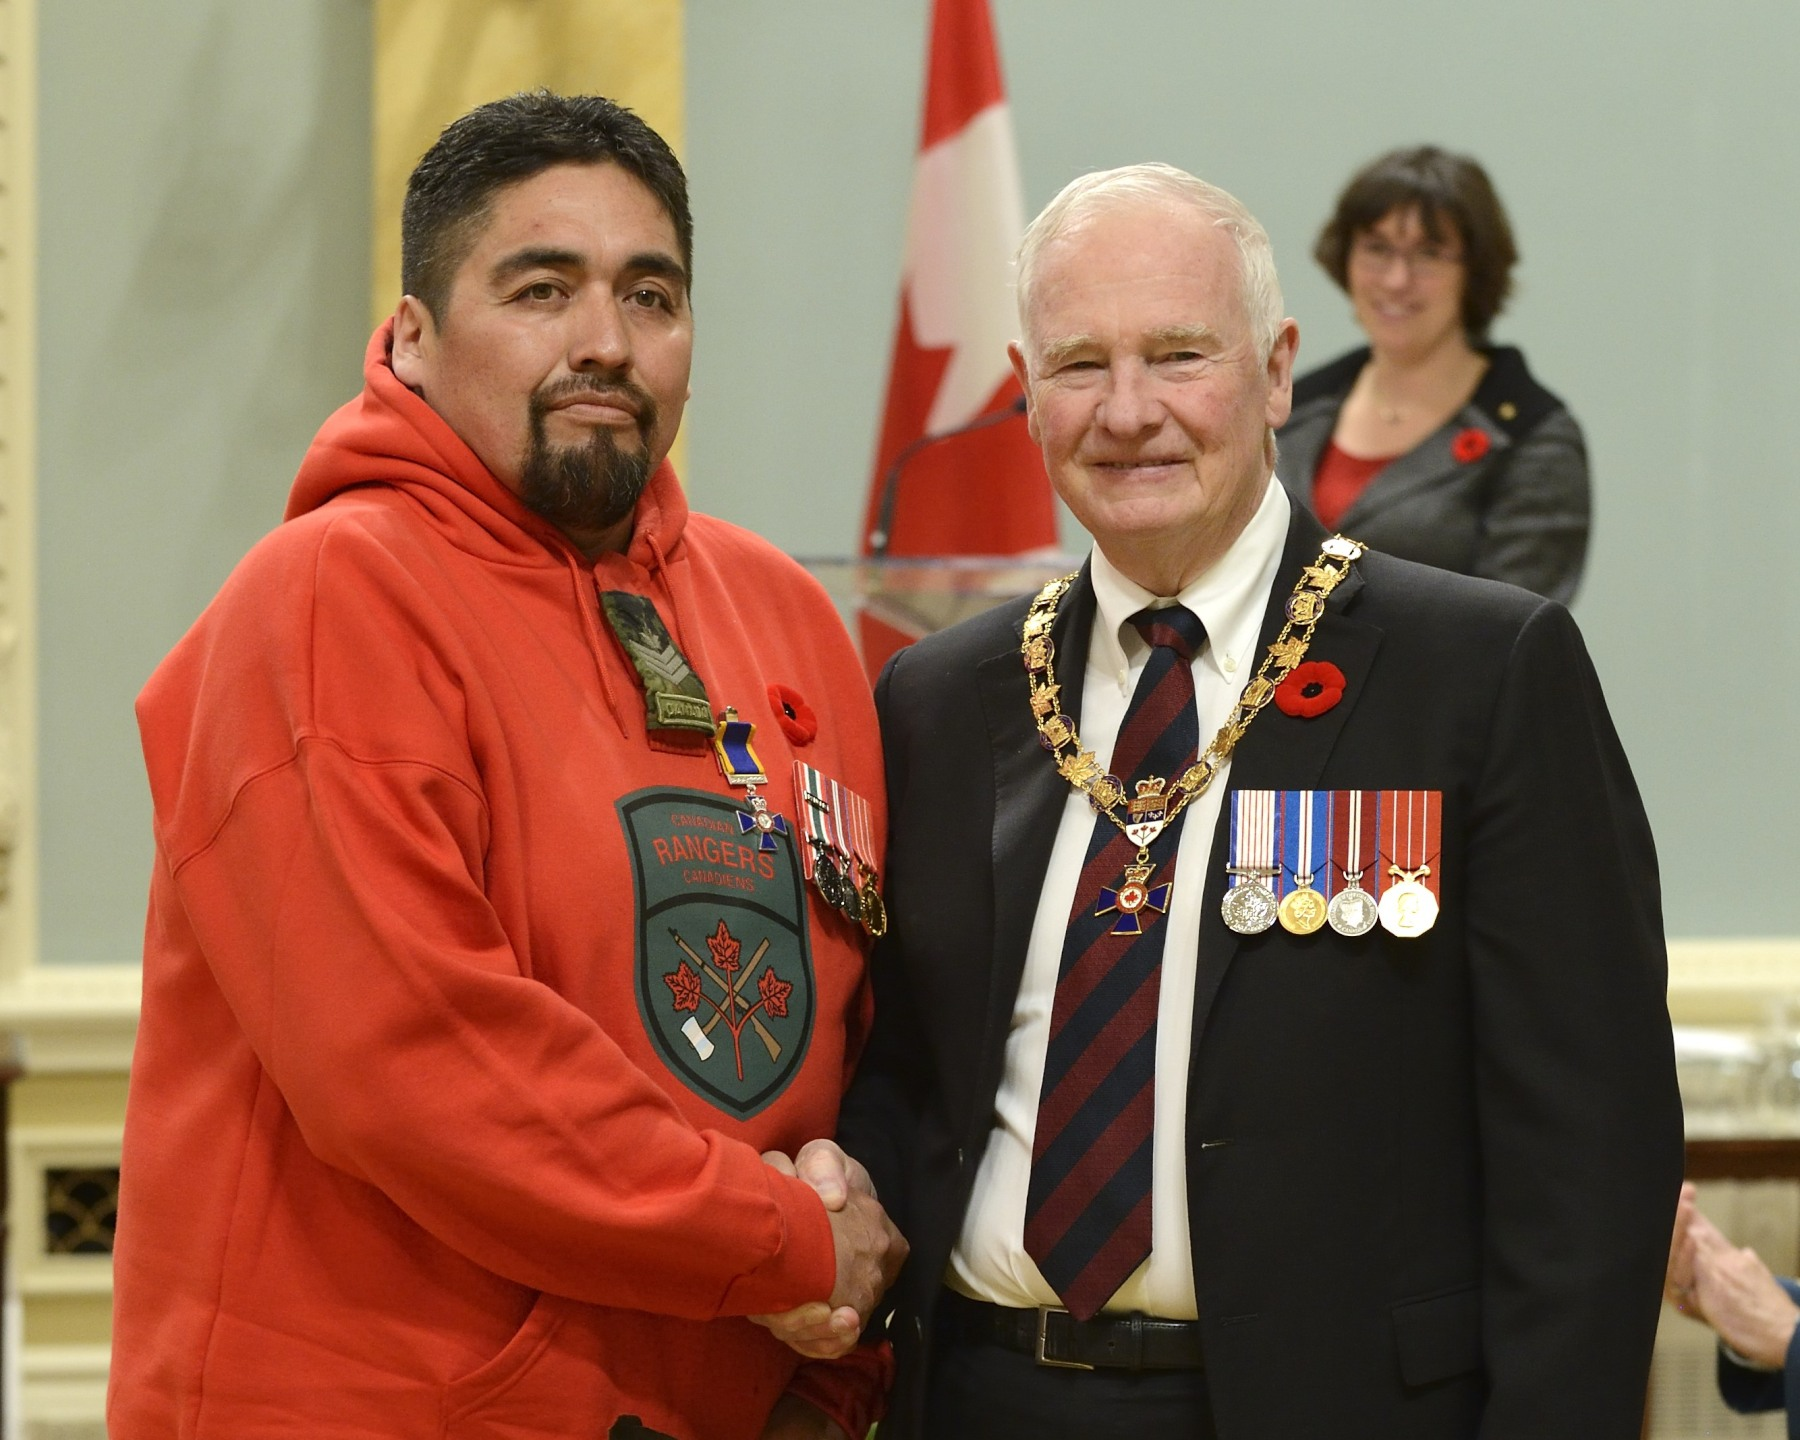 His Excellency presented the Order of Military Merit at the Member level (M.M.M.) to Sergeant Christopher Kataquapit, M.M.M., 3rd Canadian Ranger Patrol Group, Borden, Ontario.